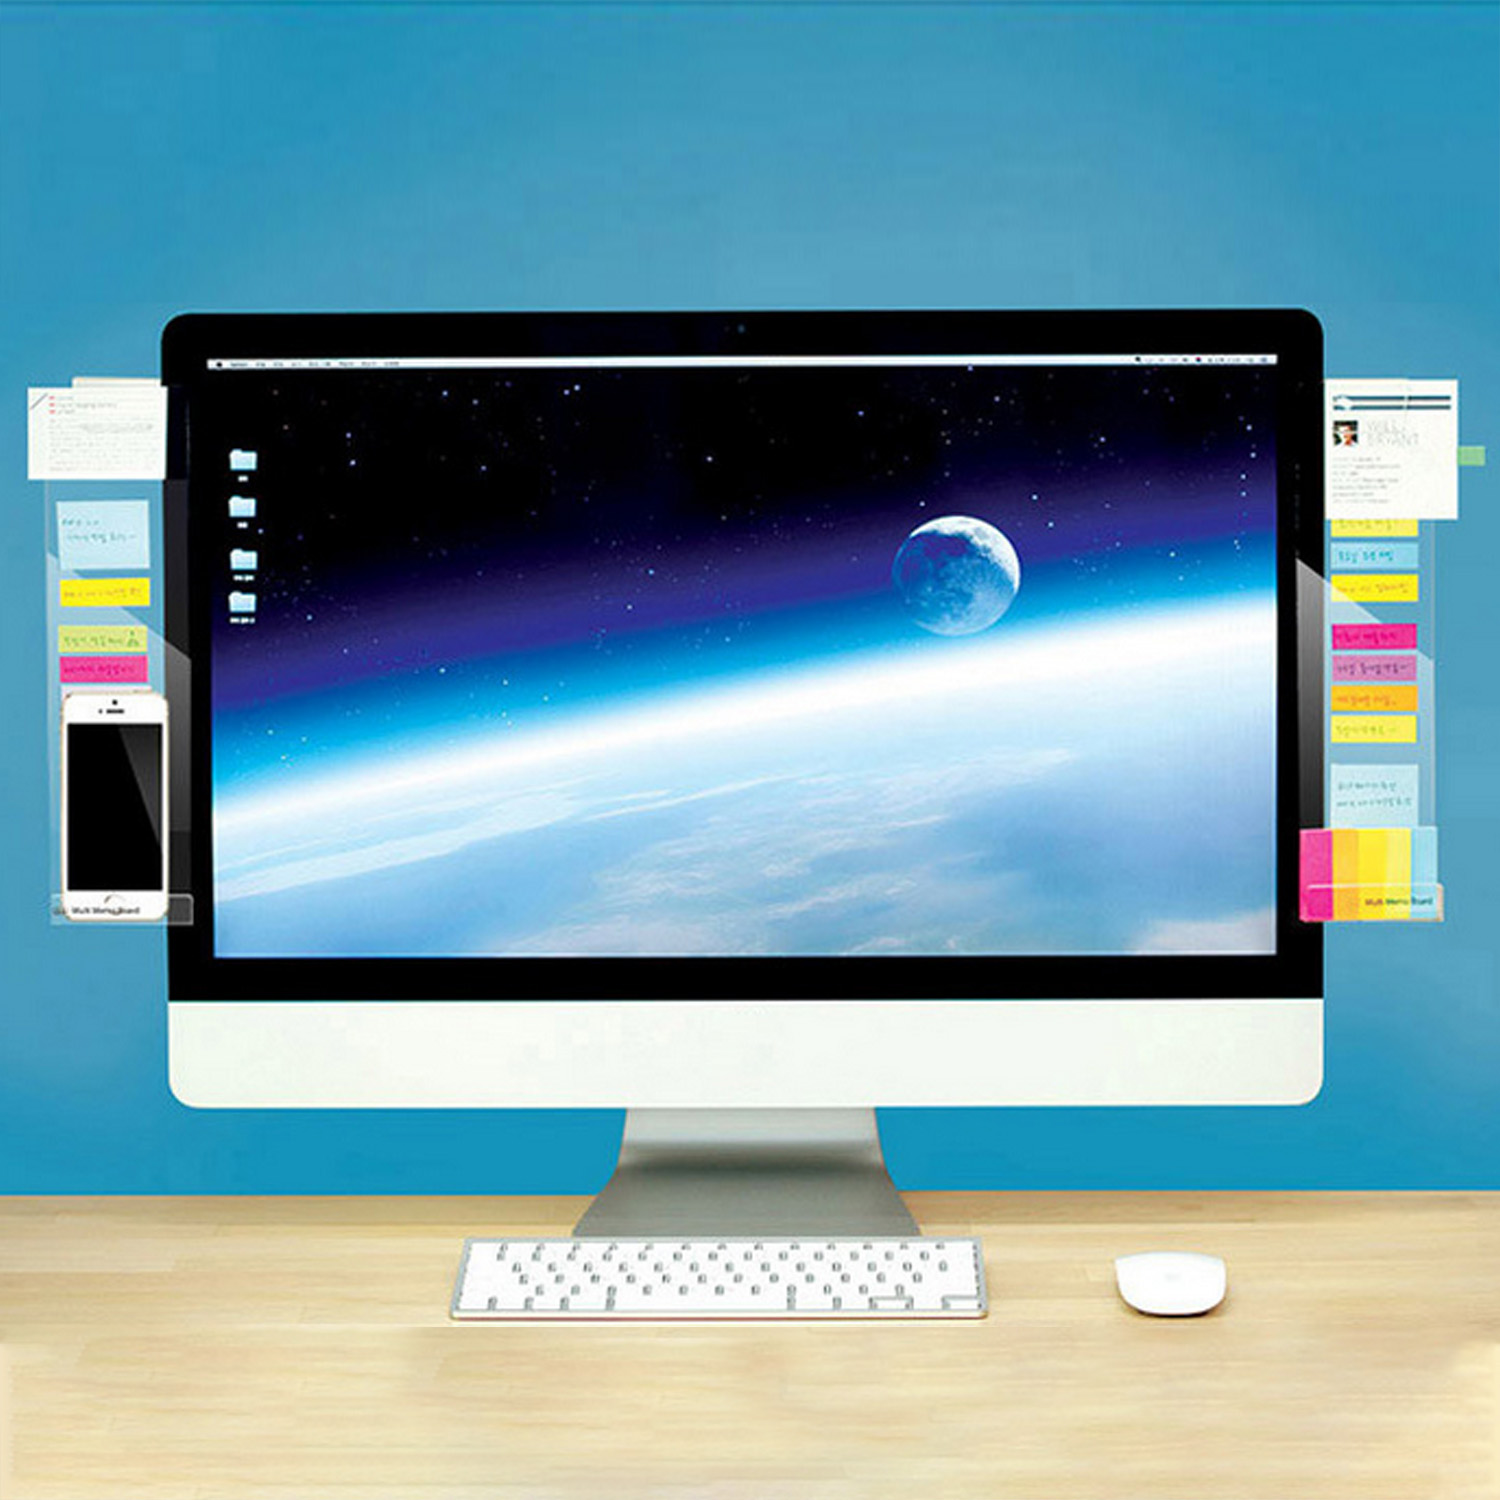 Self-adhesive Acrylic Computer Monitor Message Memo Notes Tabs Board With Phone Charging Holder For Home Office School